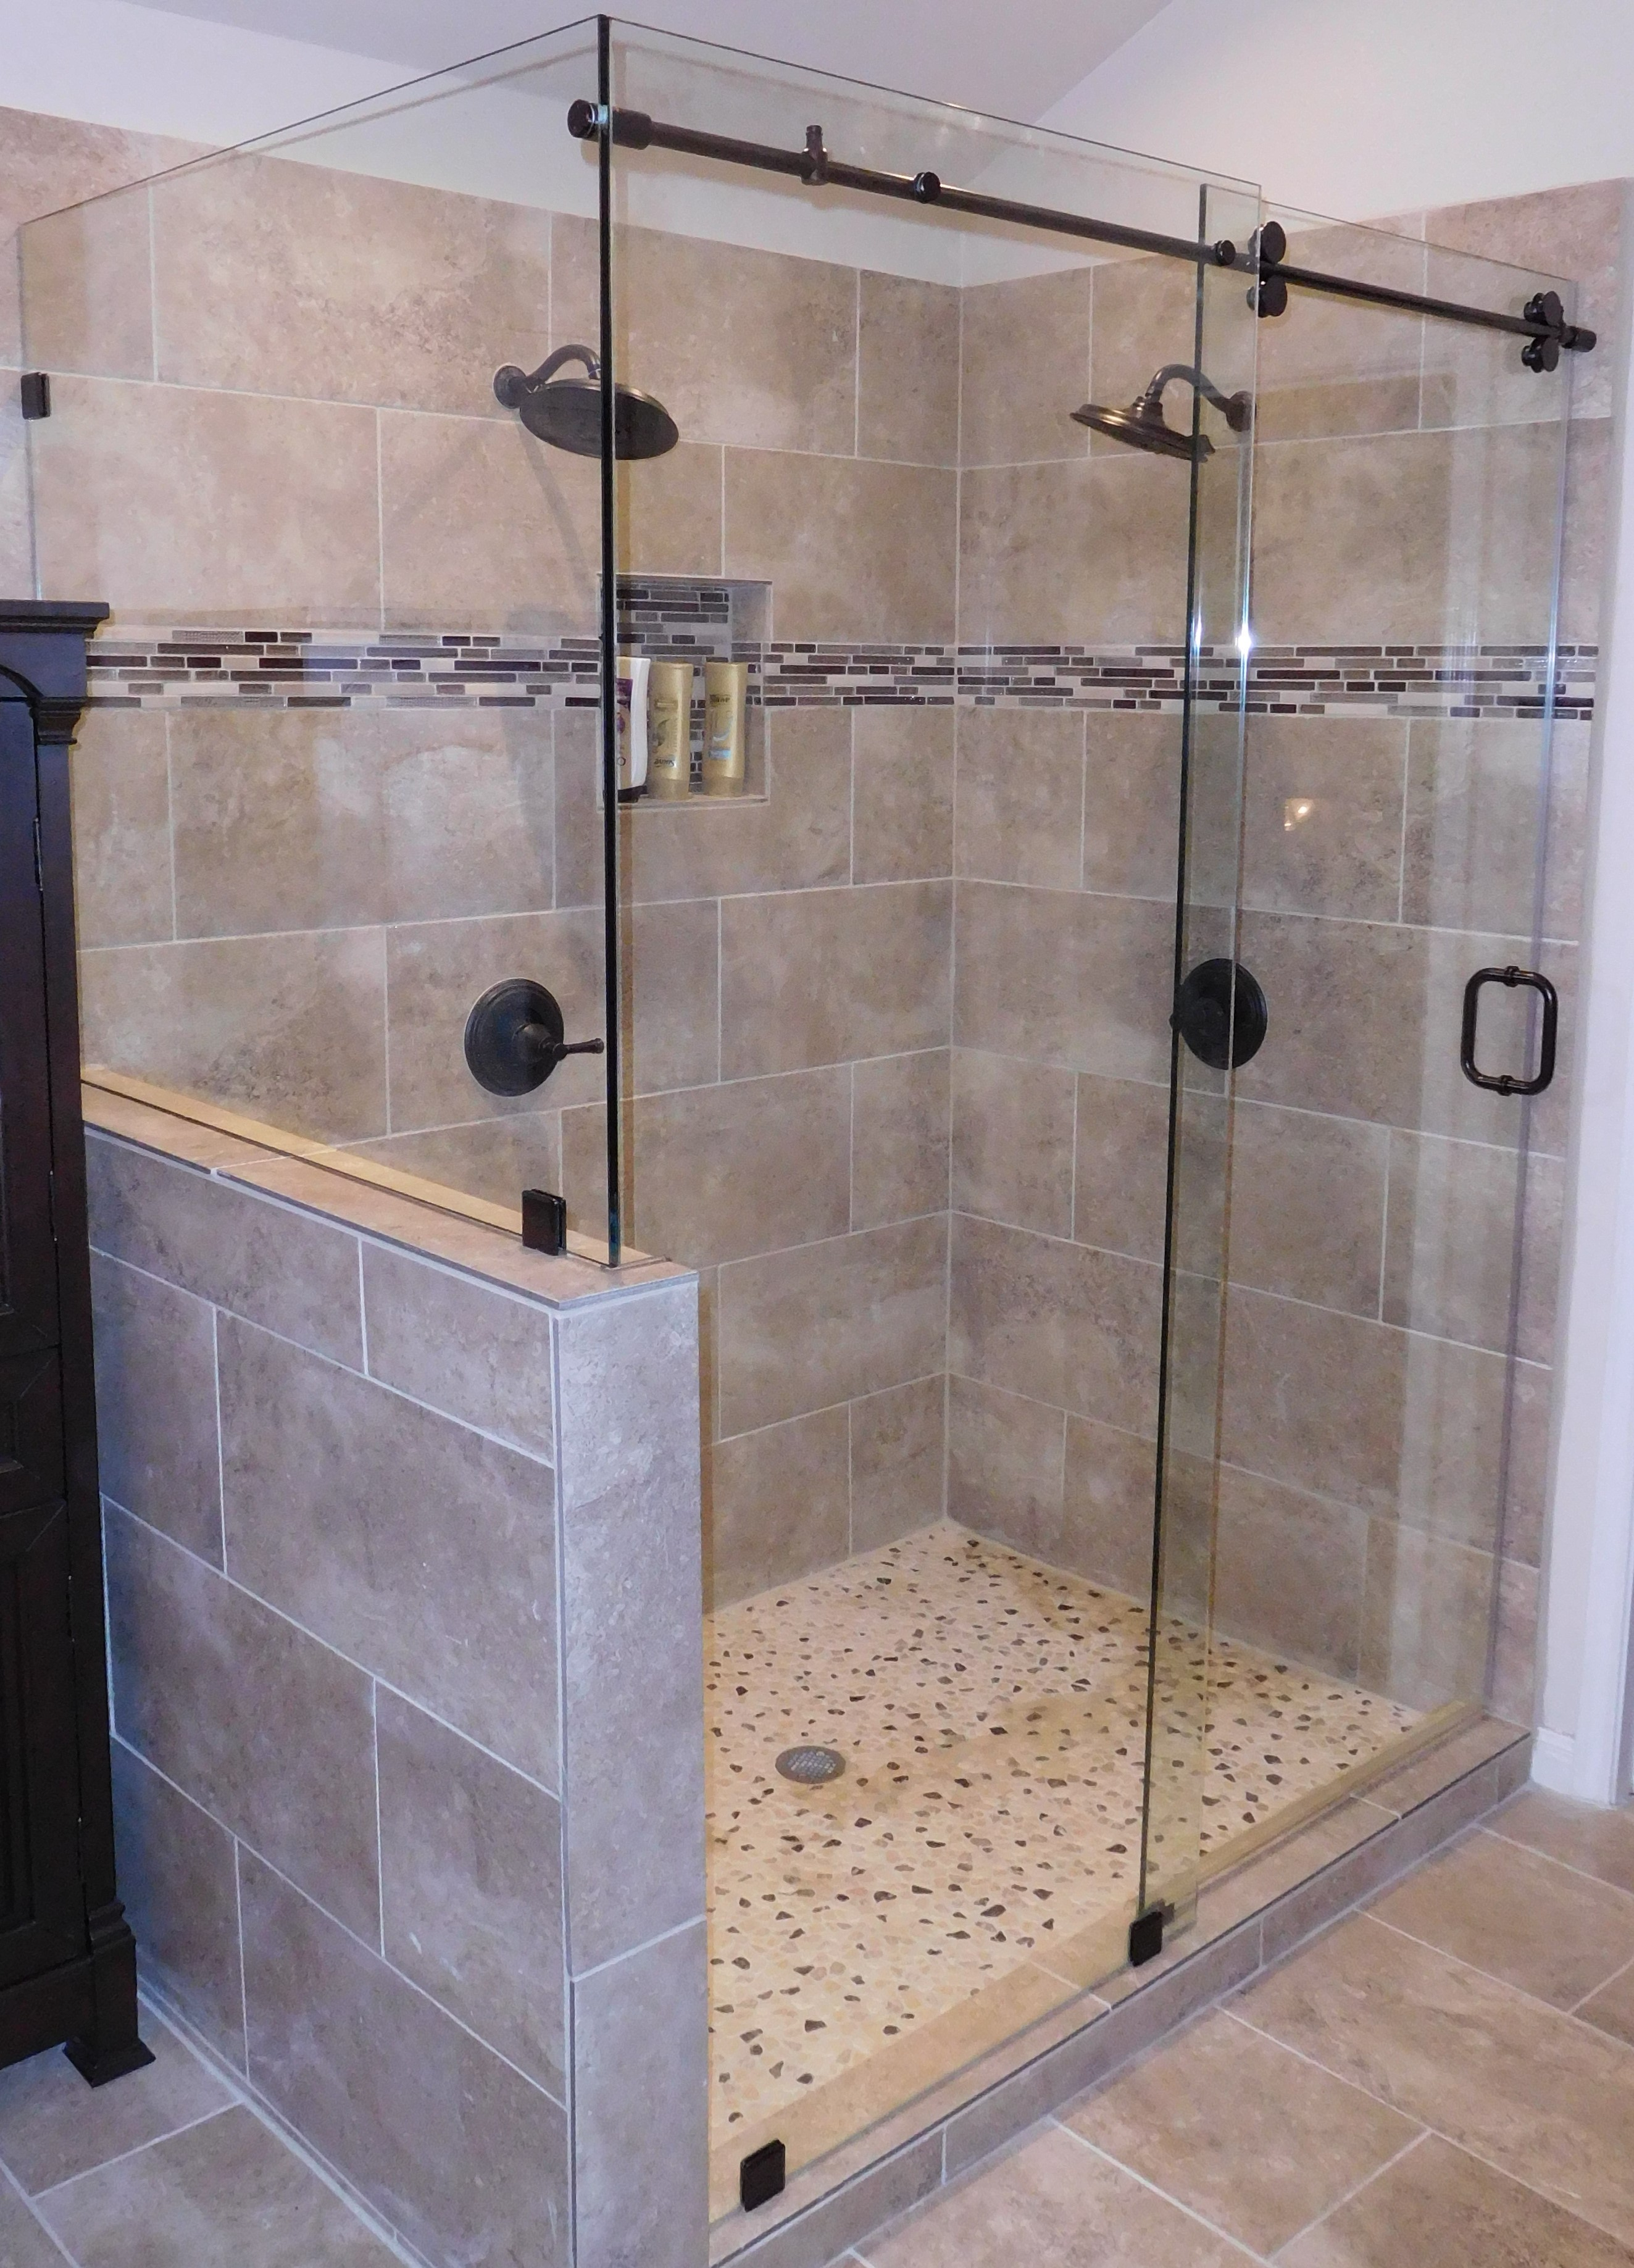 glass company fairview yp boise id shower com austin ave roadrunner mip doors of w